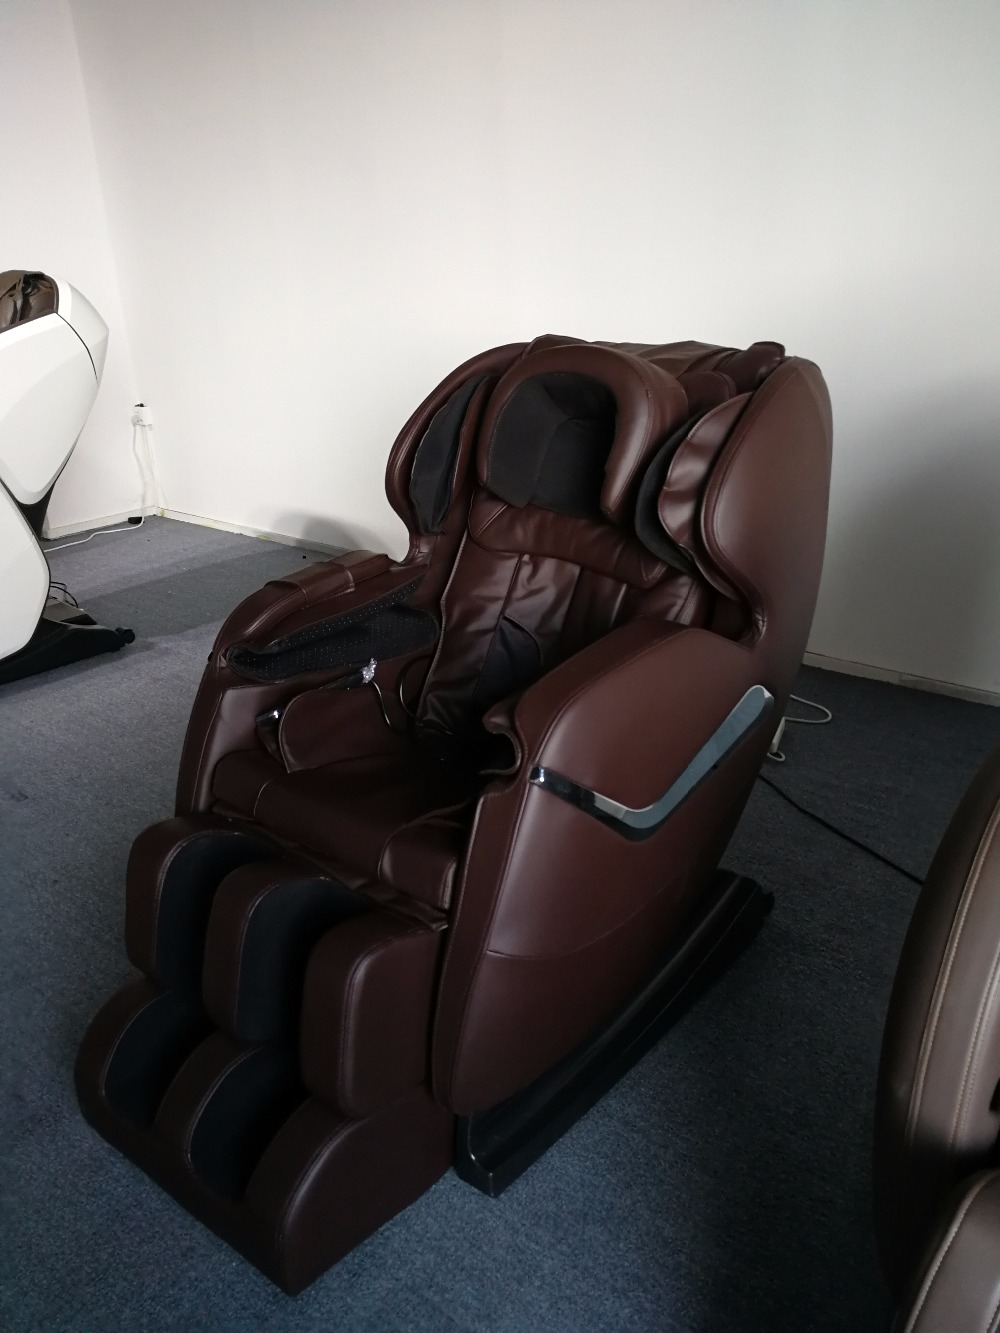 Beanbag Armchair Hot Vibrator Massage Chair Home Office Computer Play Gam  Massagem Relaxation Multi Functional Imitation Human  In Living Room Sofas  From ...